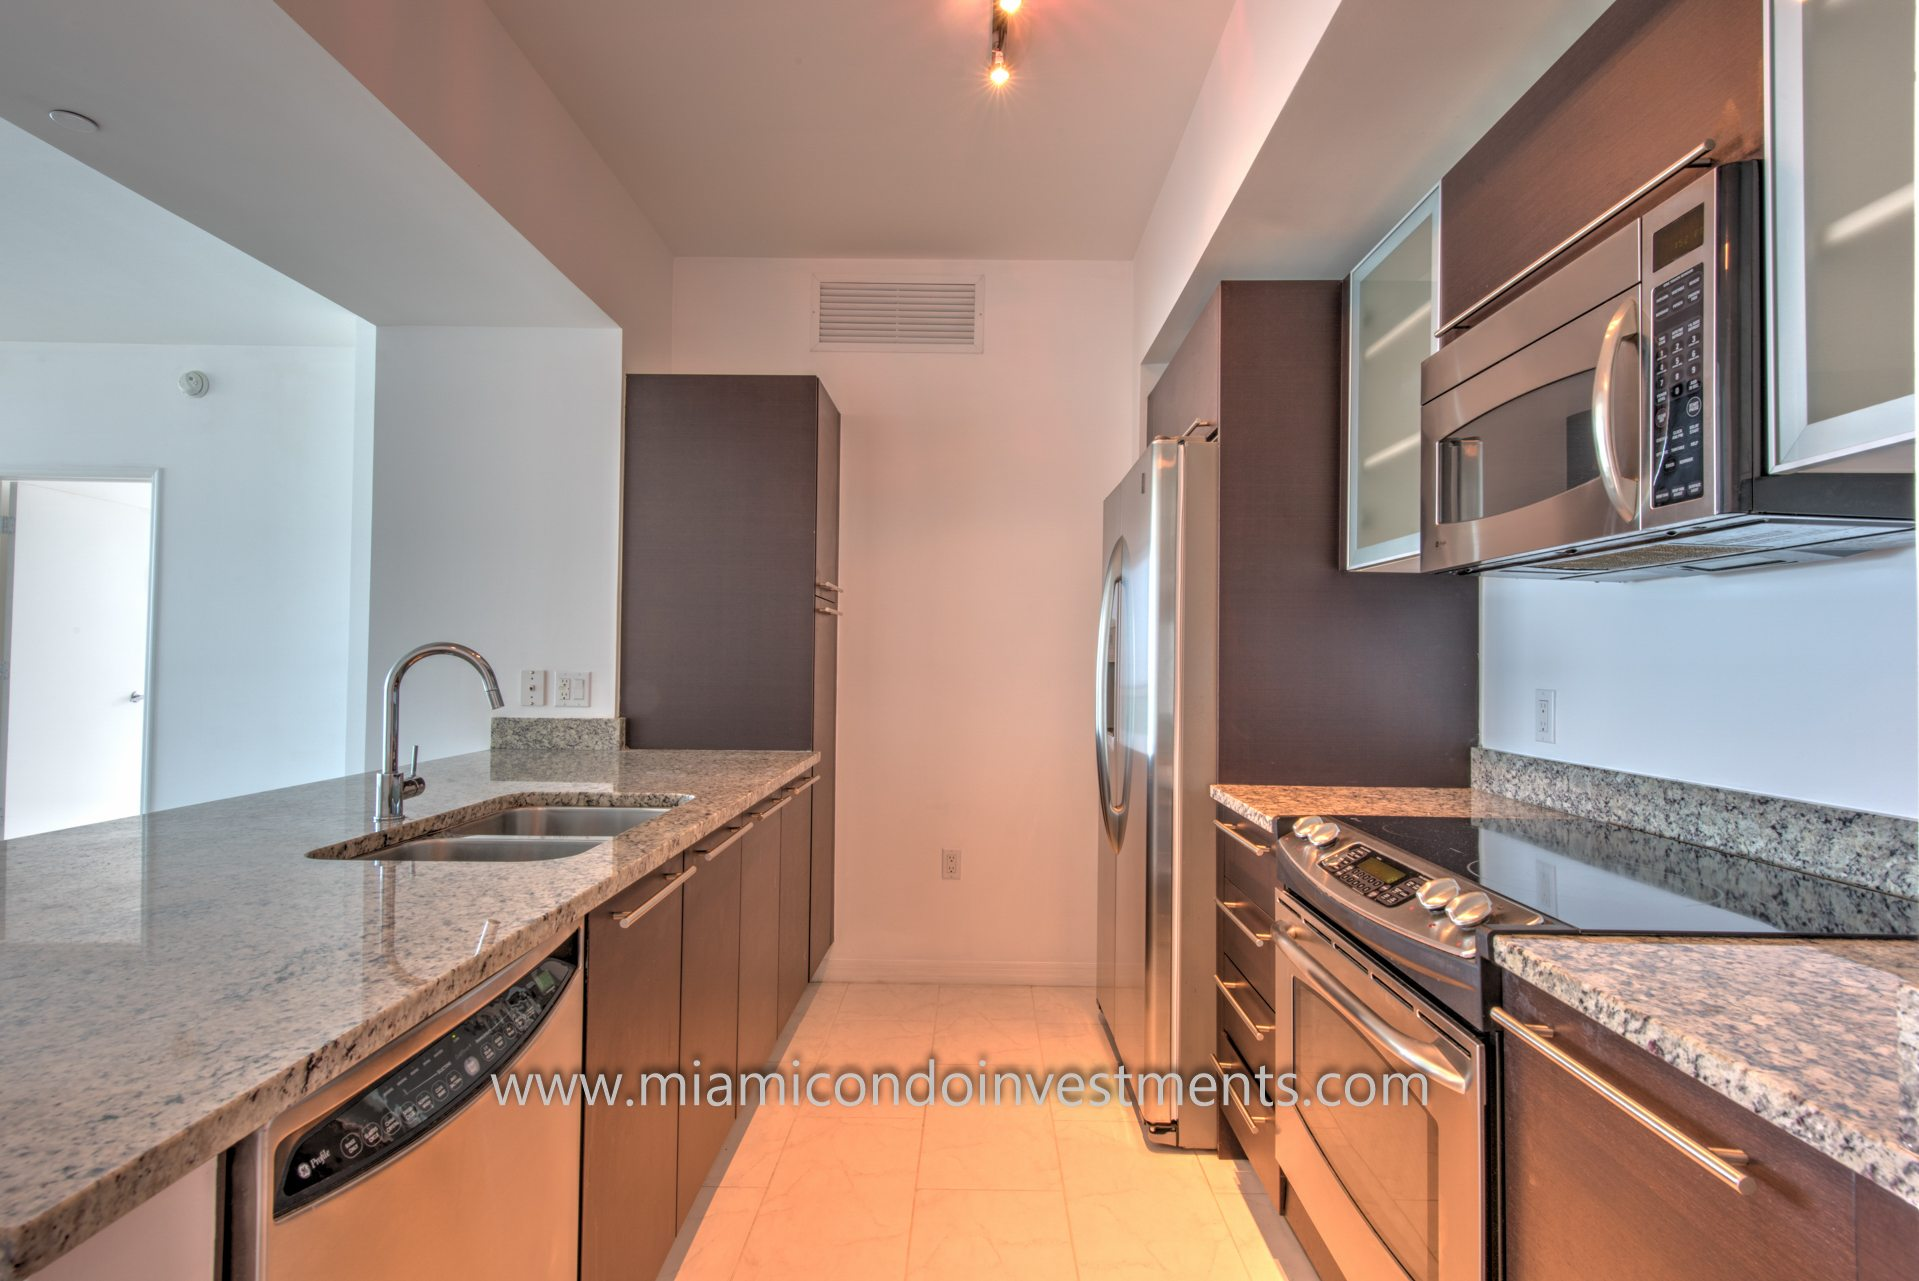 The Plaza on Brickell east tower kitchen 2